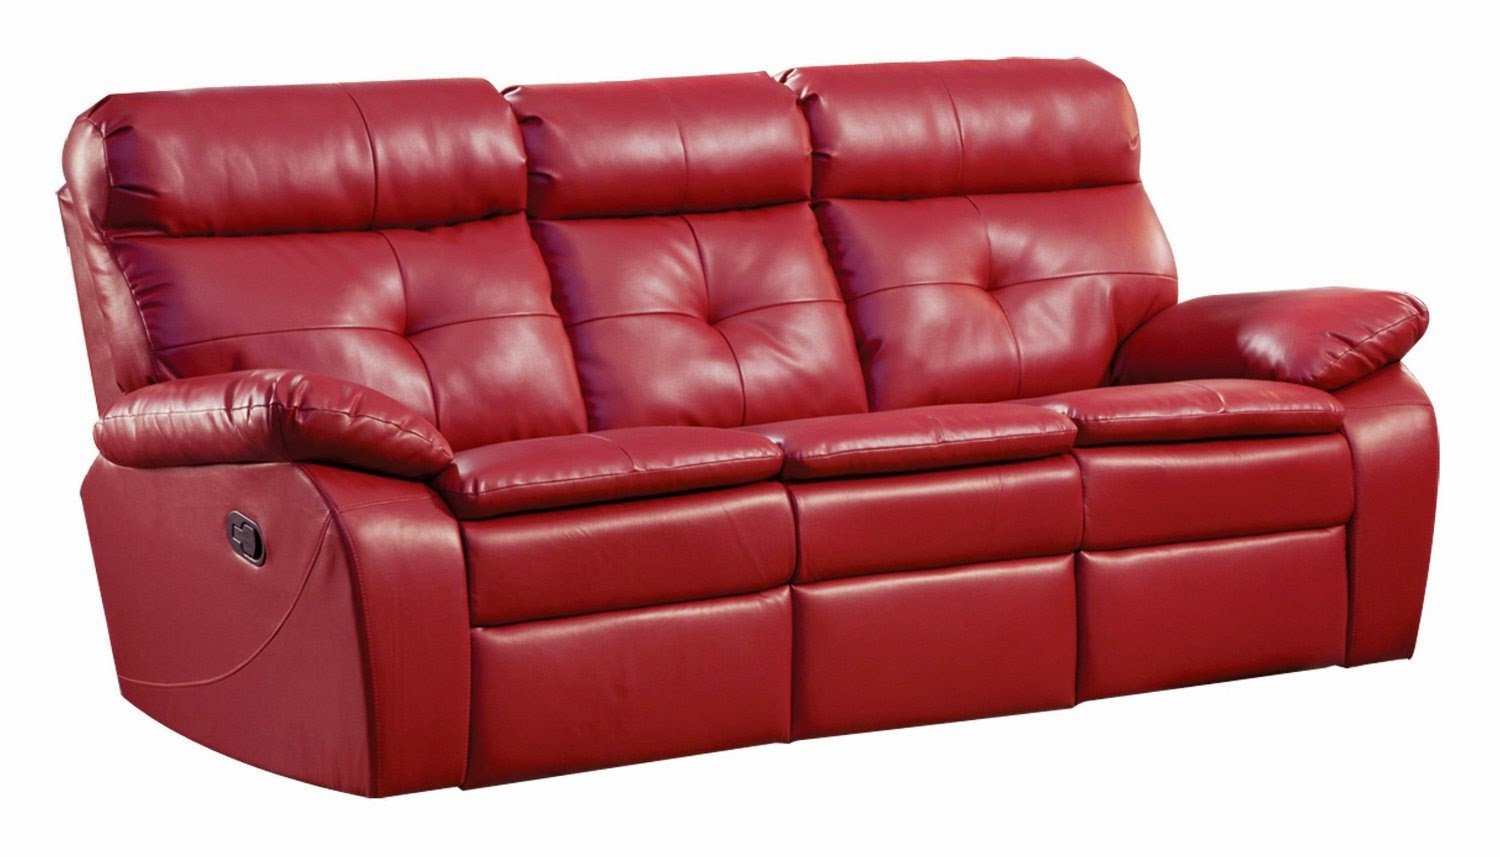 Best ideas about Red Recliner Sofa . Save or Pin Top Seller Reclining And Recliner Sofa Loveseat Red Now.